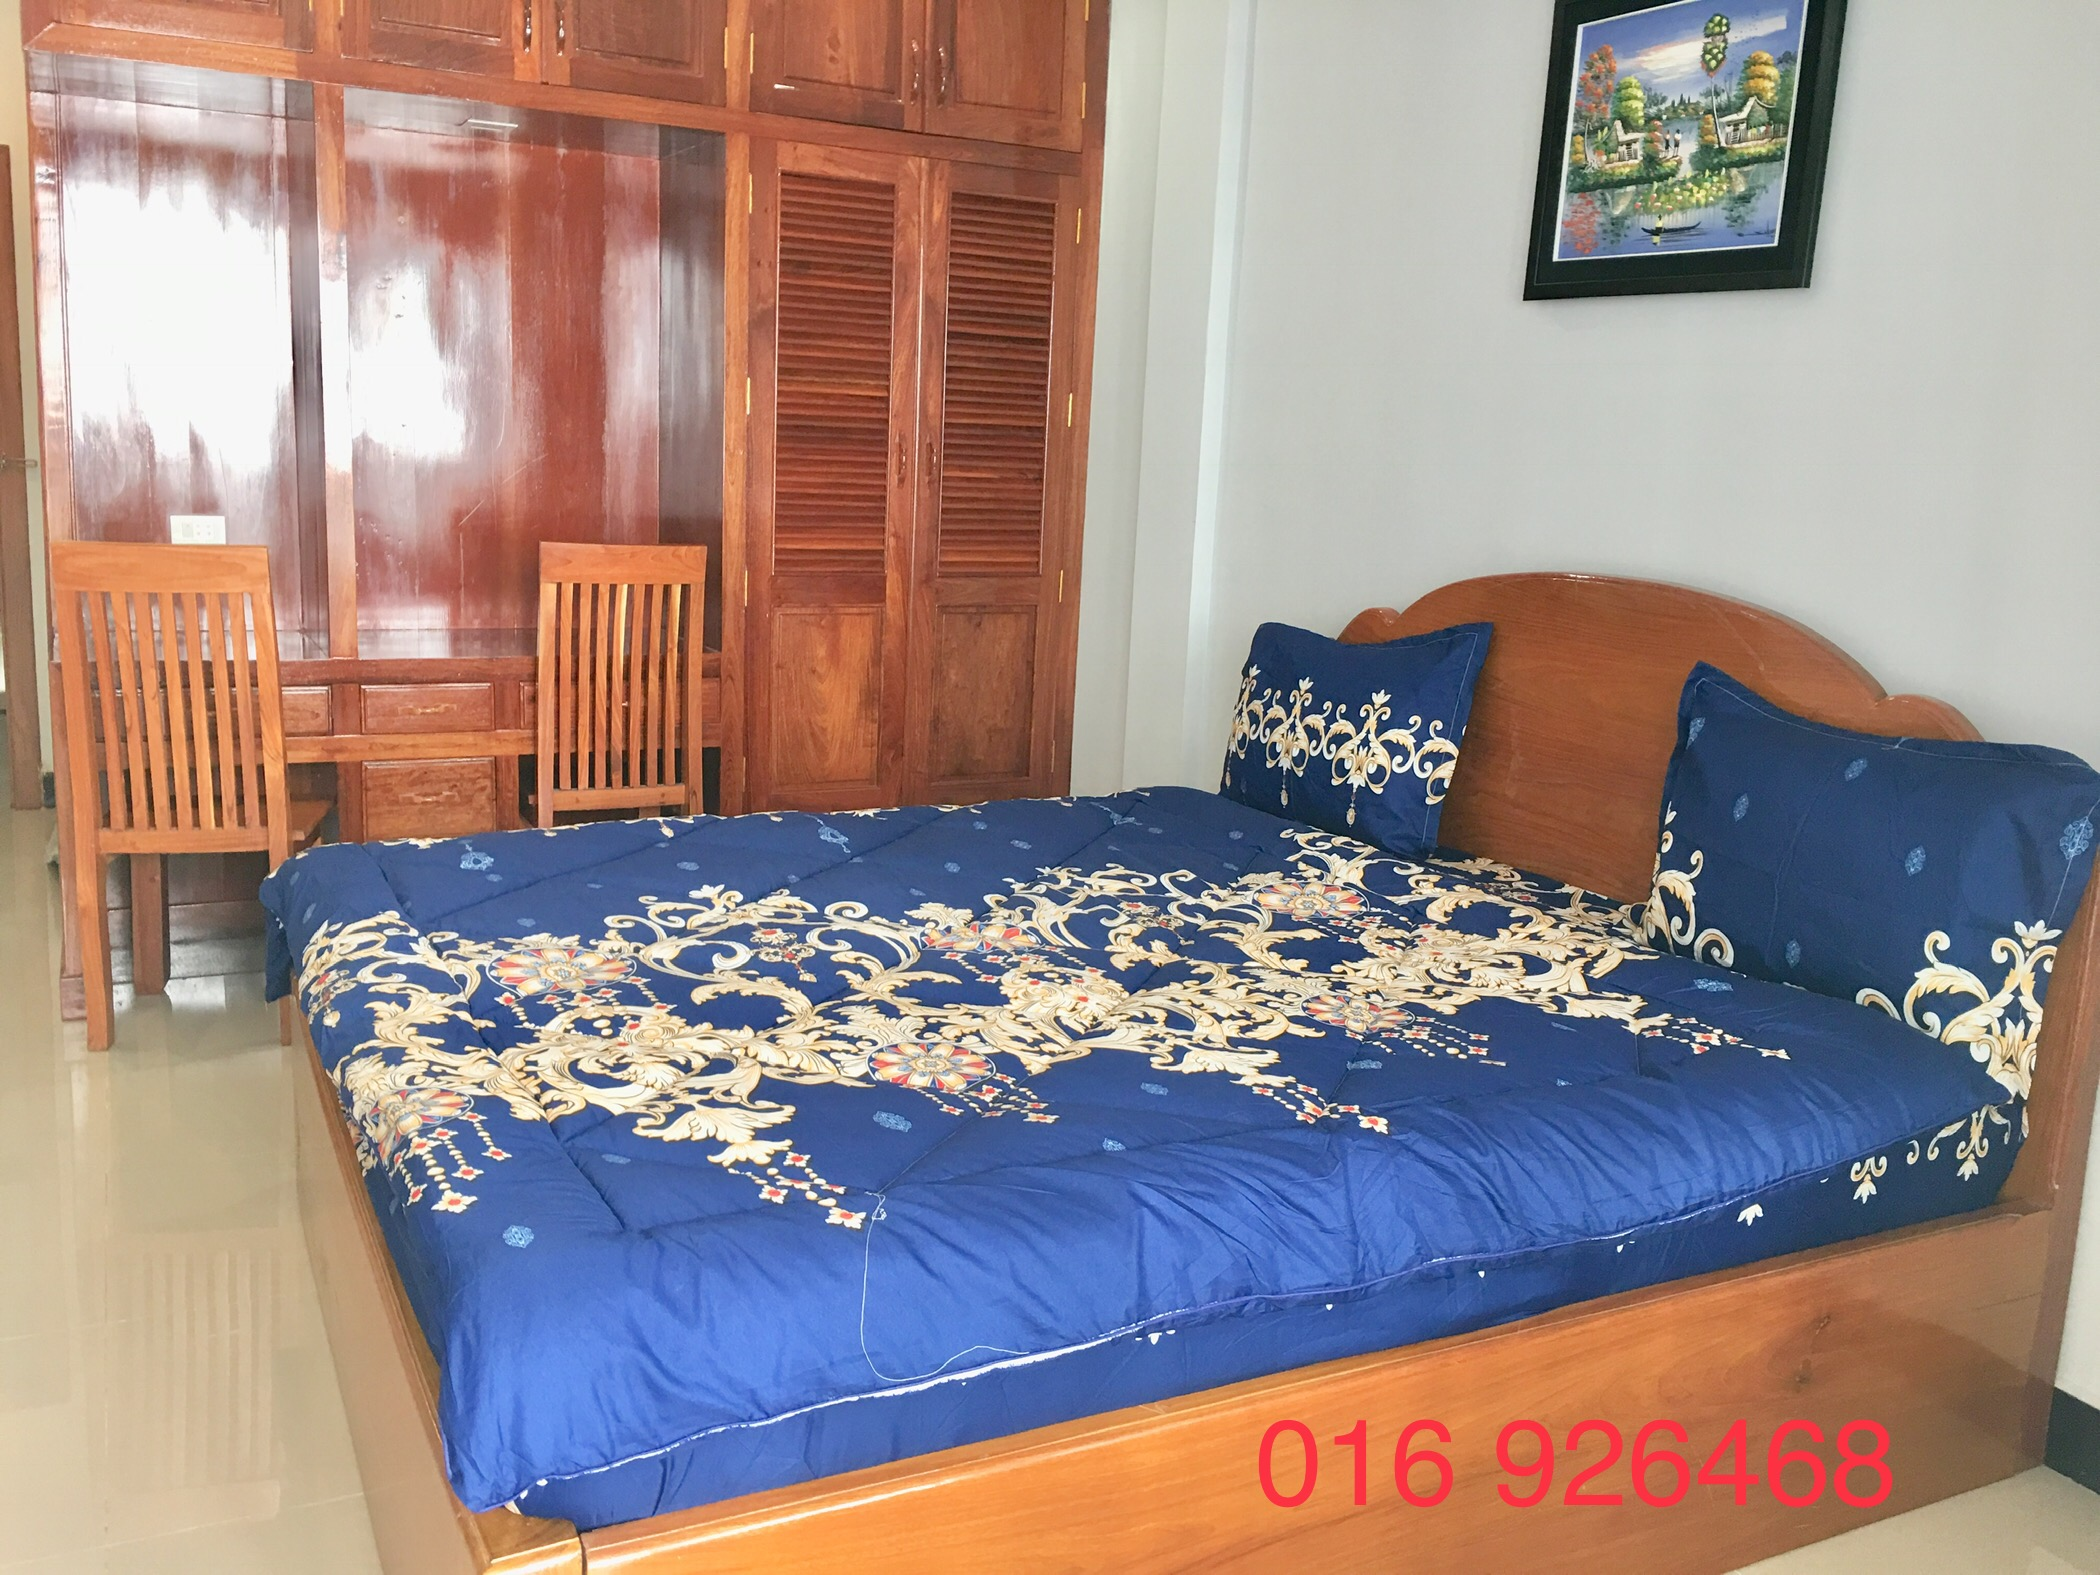 1 Bedroom $250 Fully Furnished Apartment for Rent in Phnom Penh,Russian Market